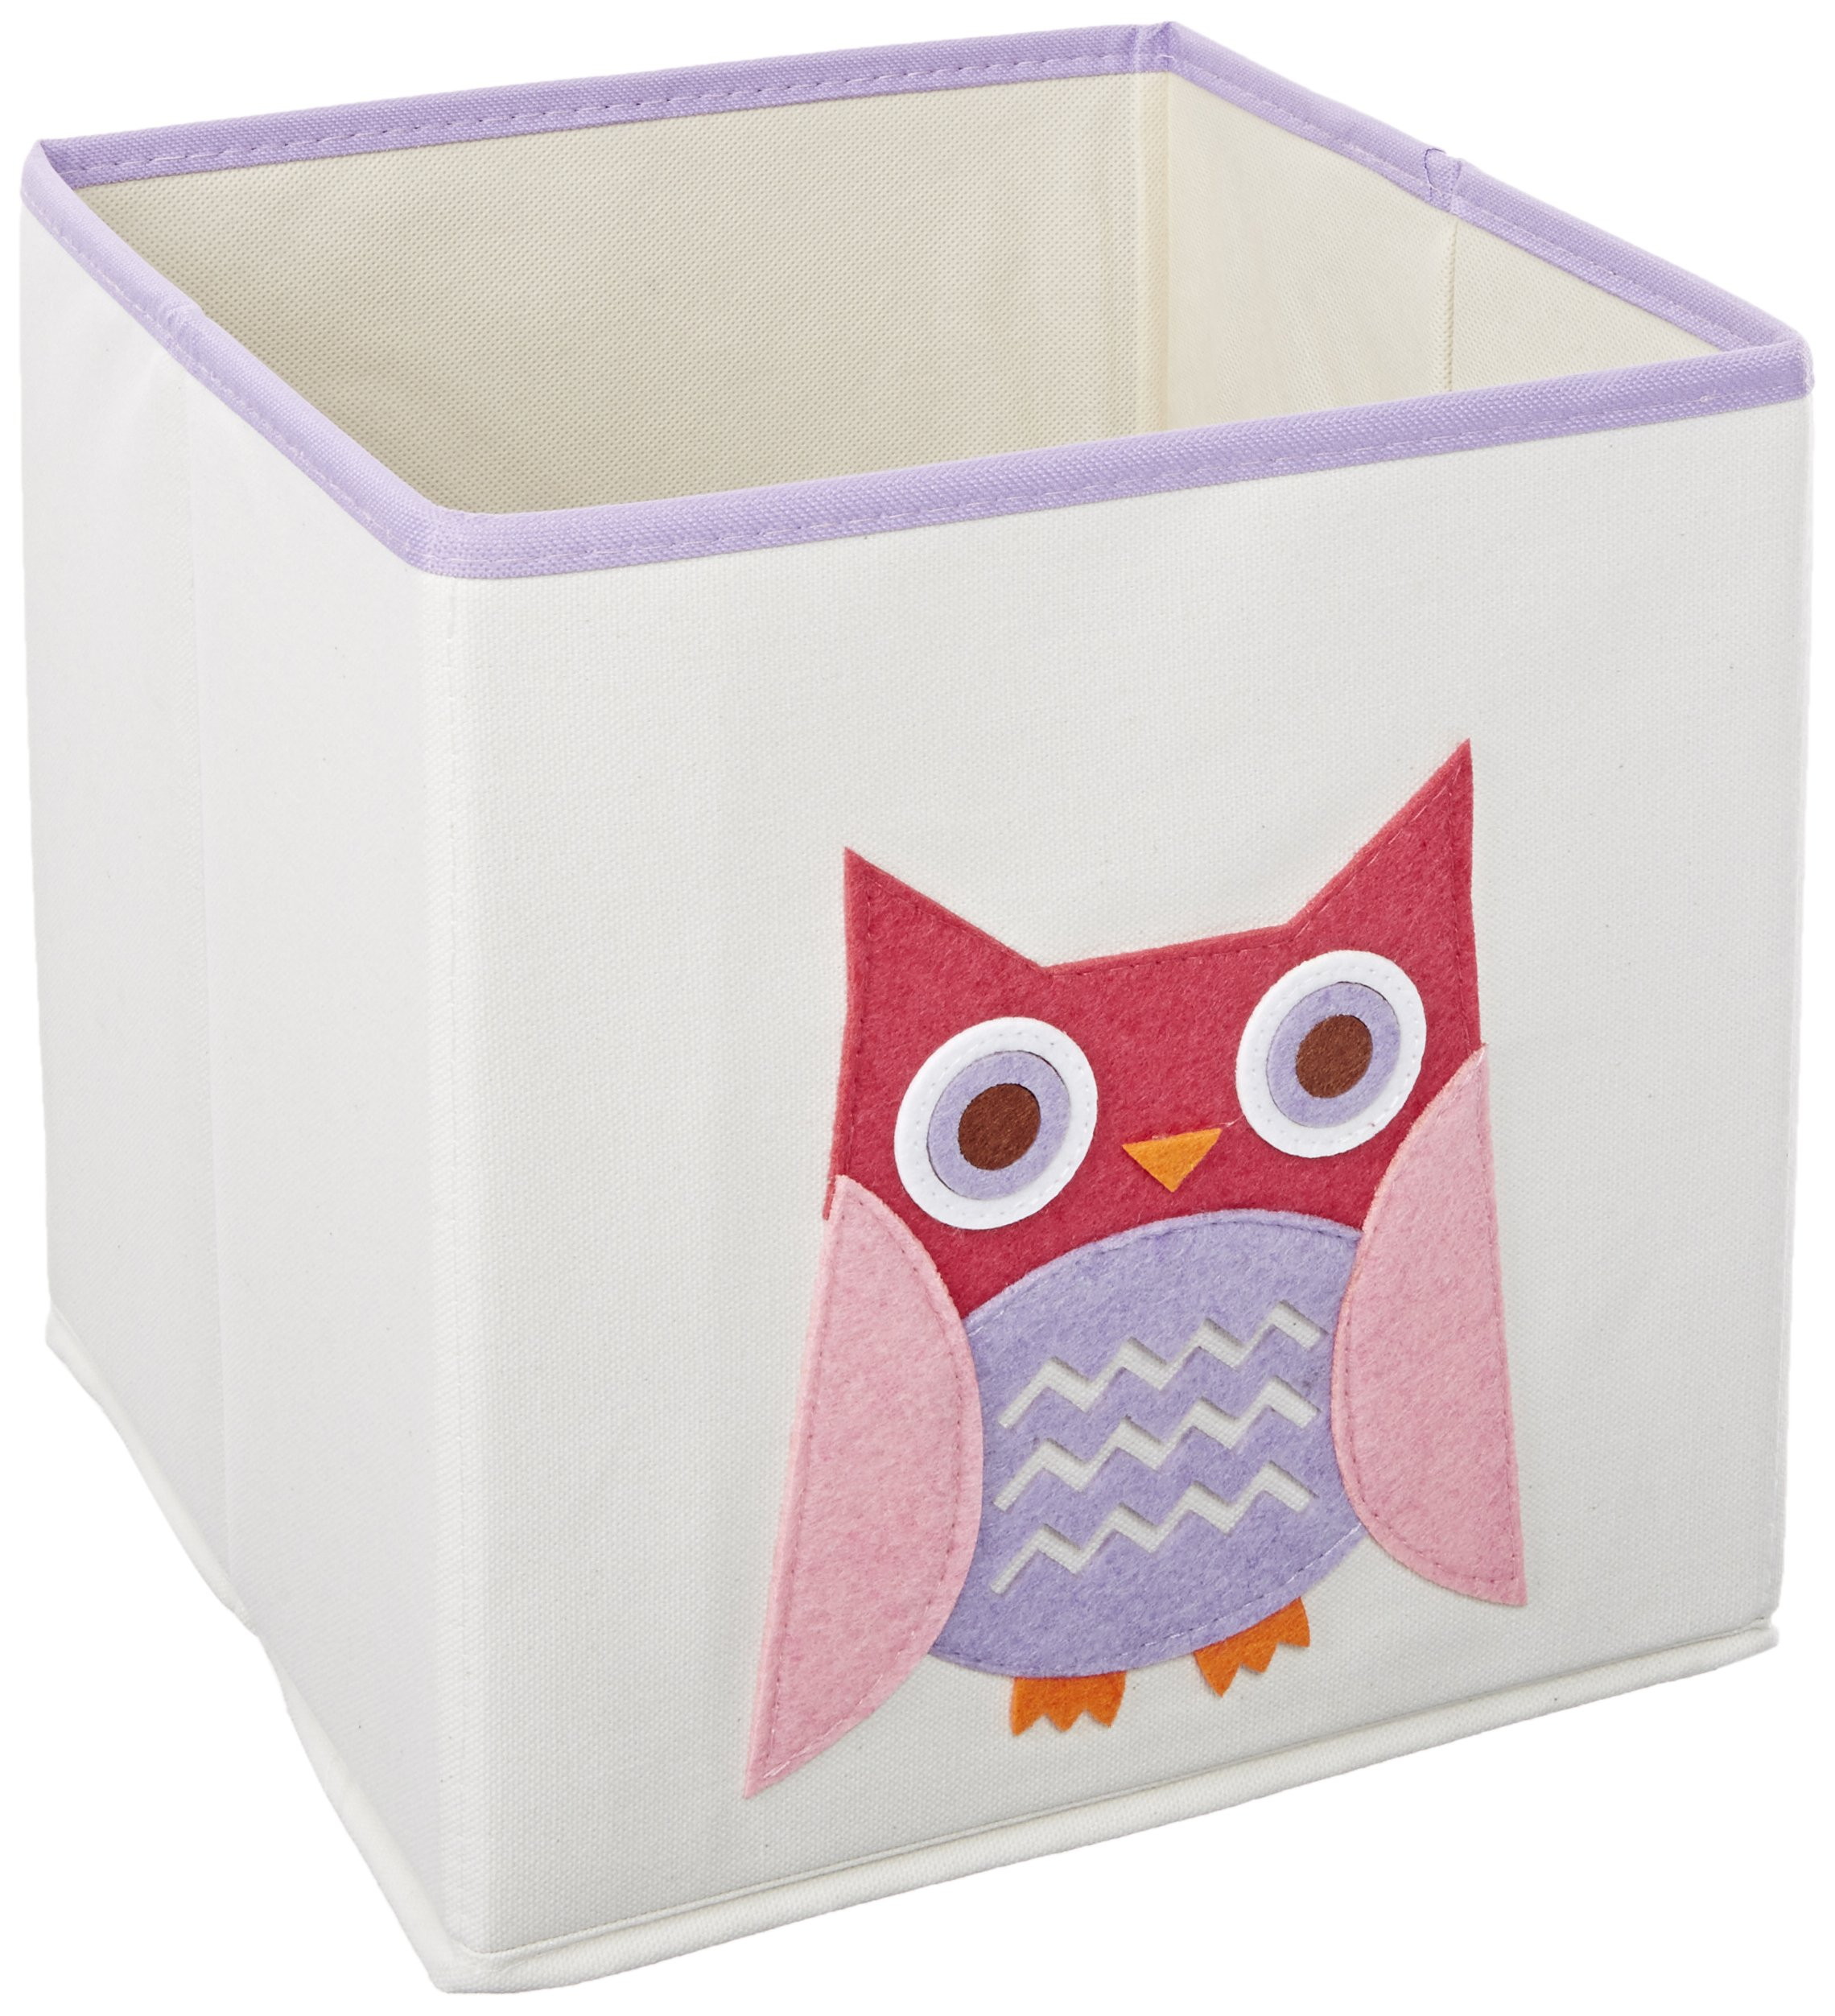 Whitmor Canvas 10'' Collapsible Cube,